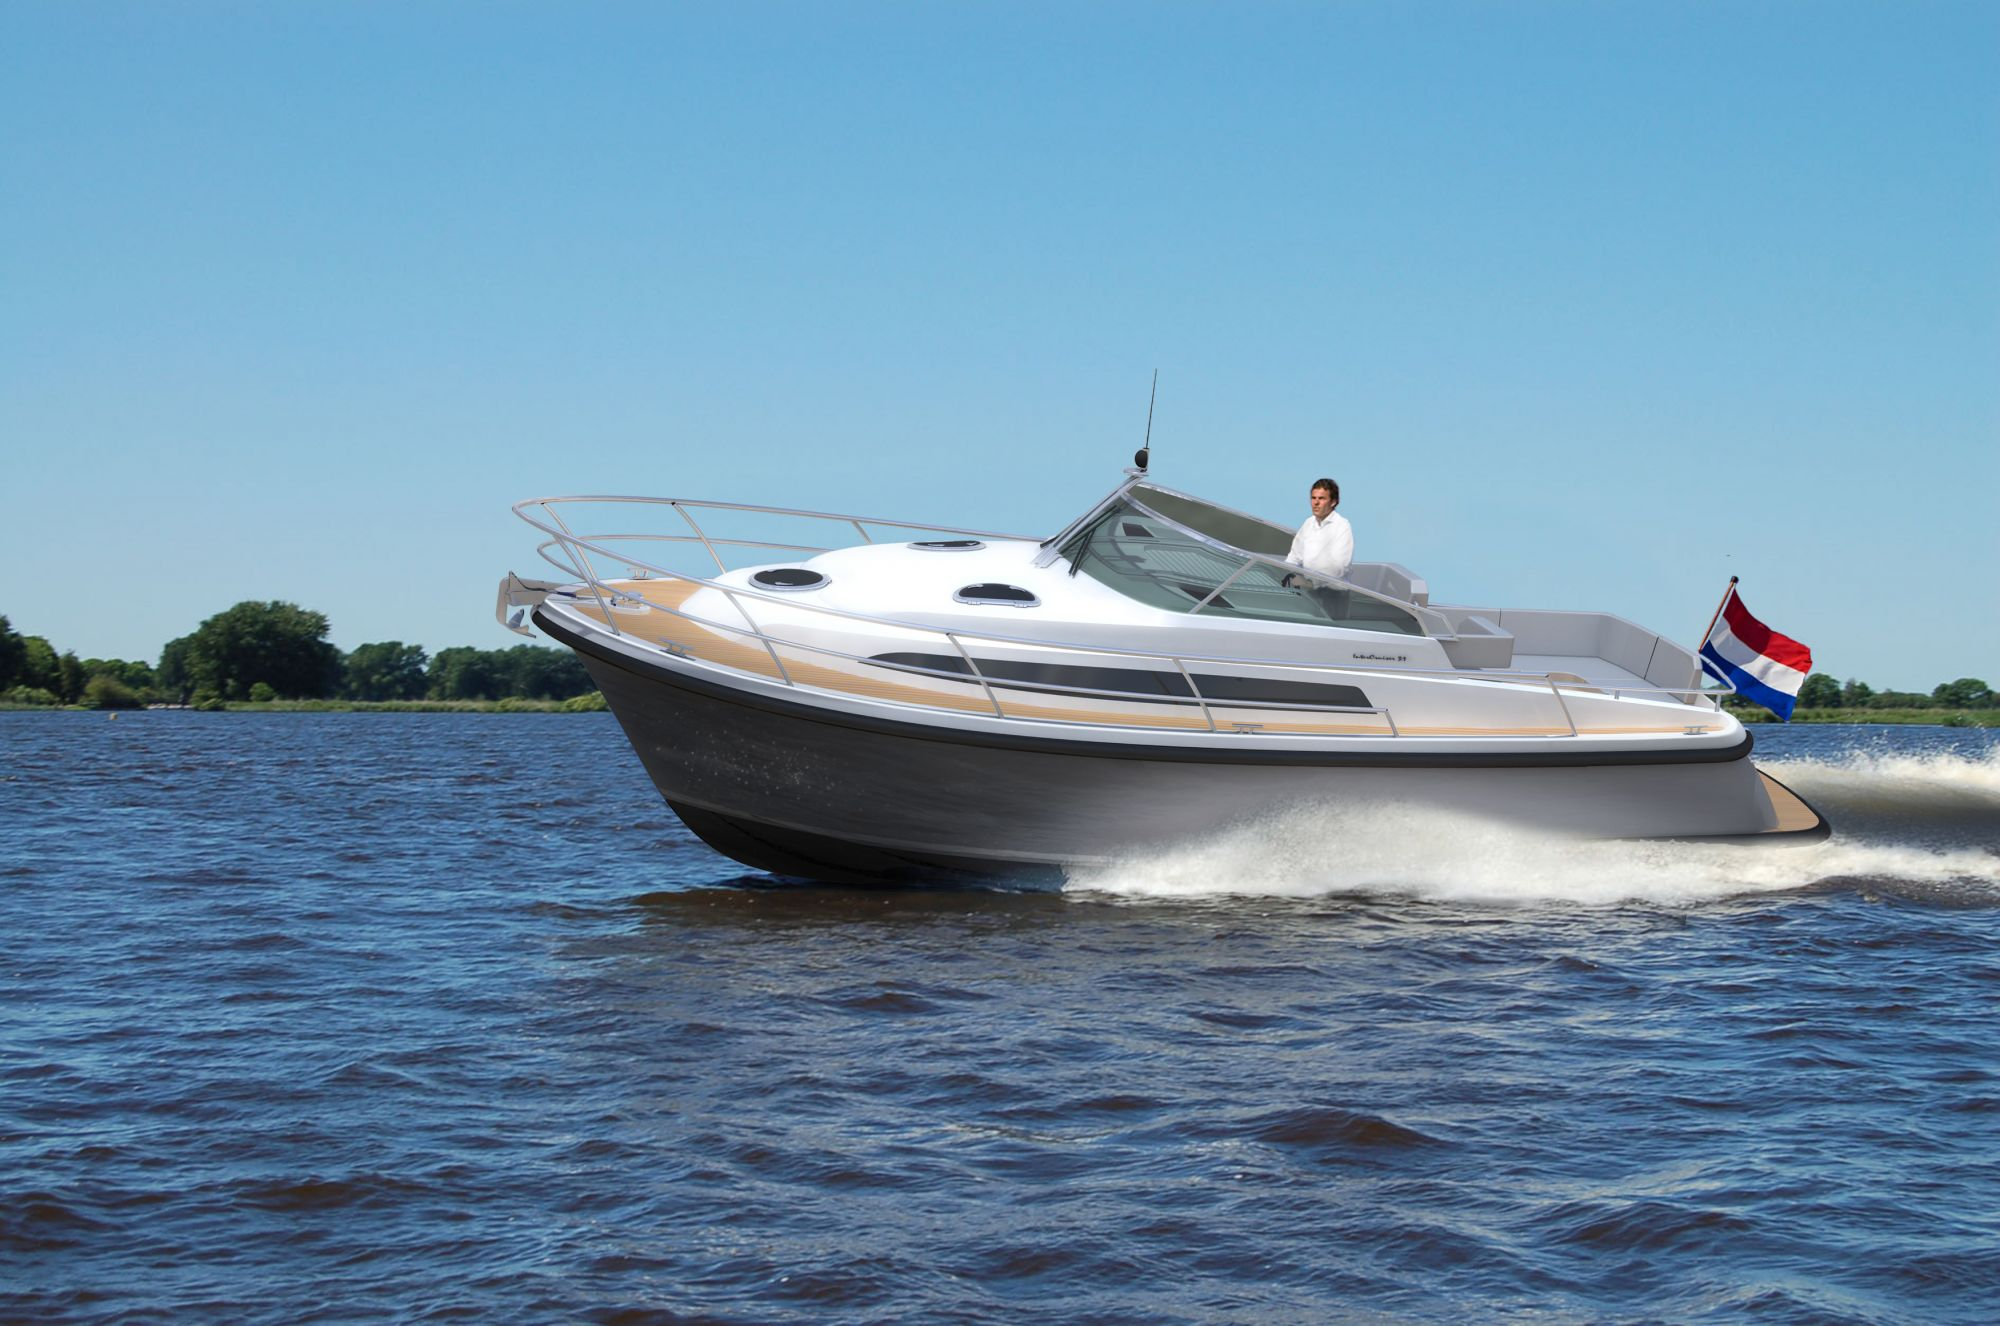 Intercruiser 31